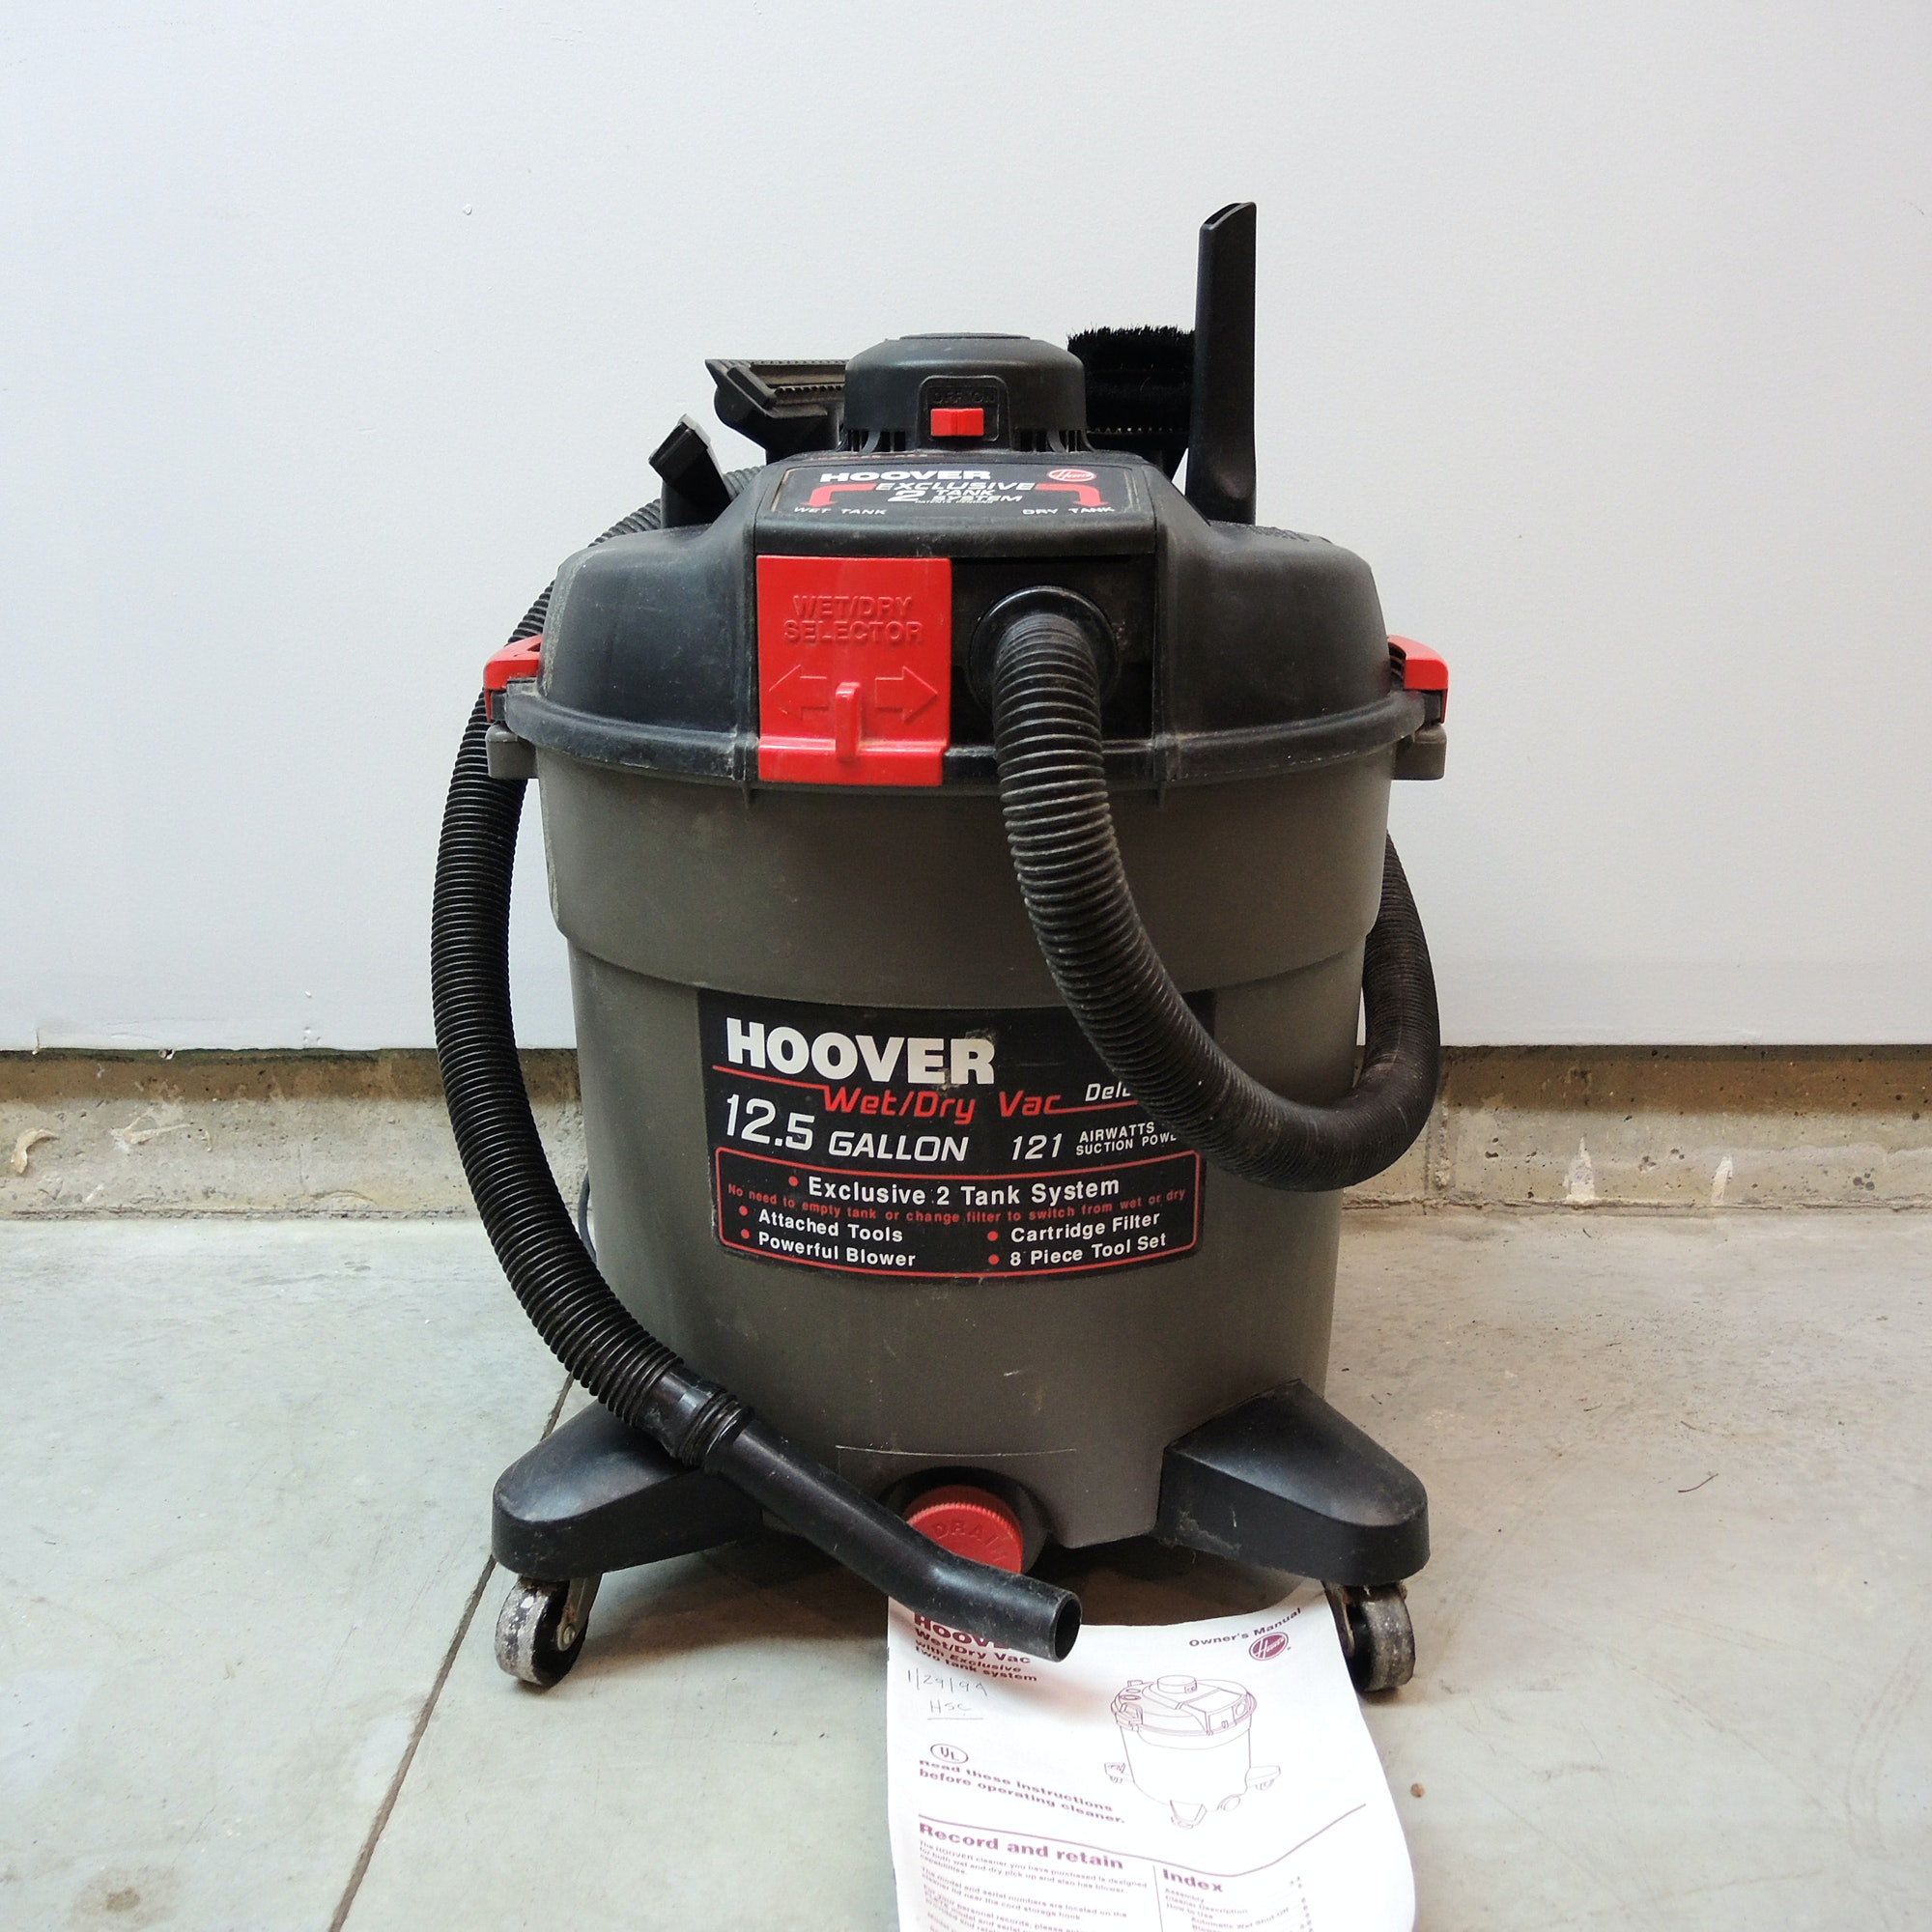 Hoover 12.5 Gallon Wet Dry Vac Deluxe